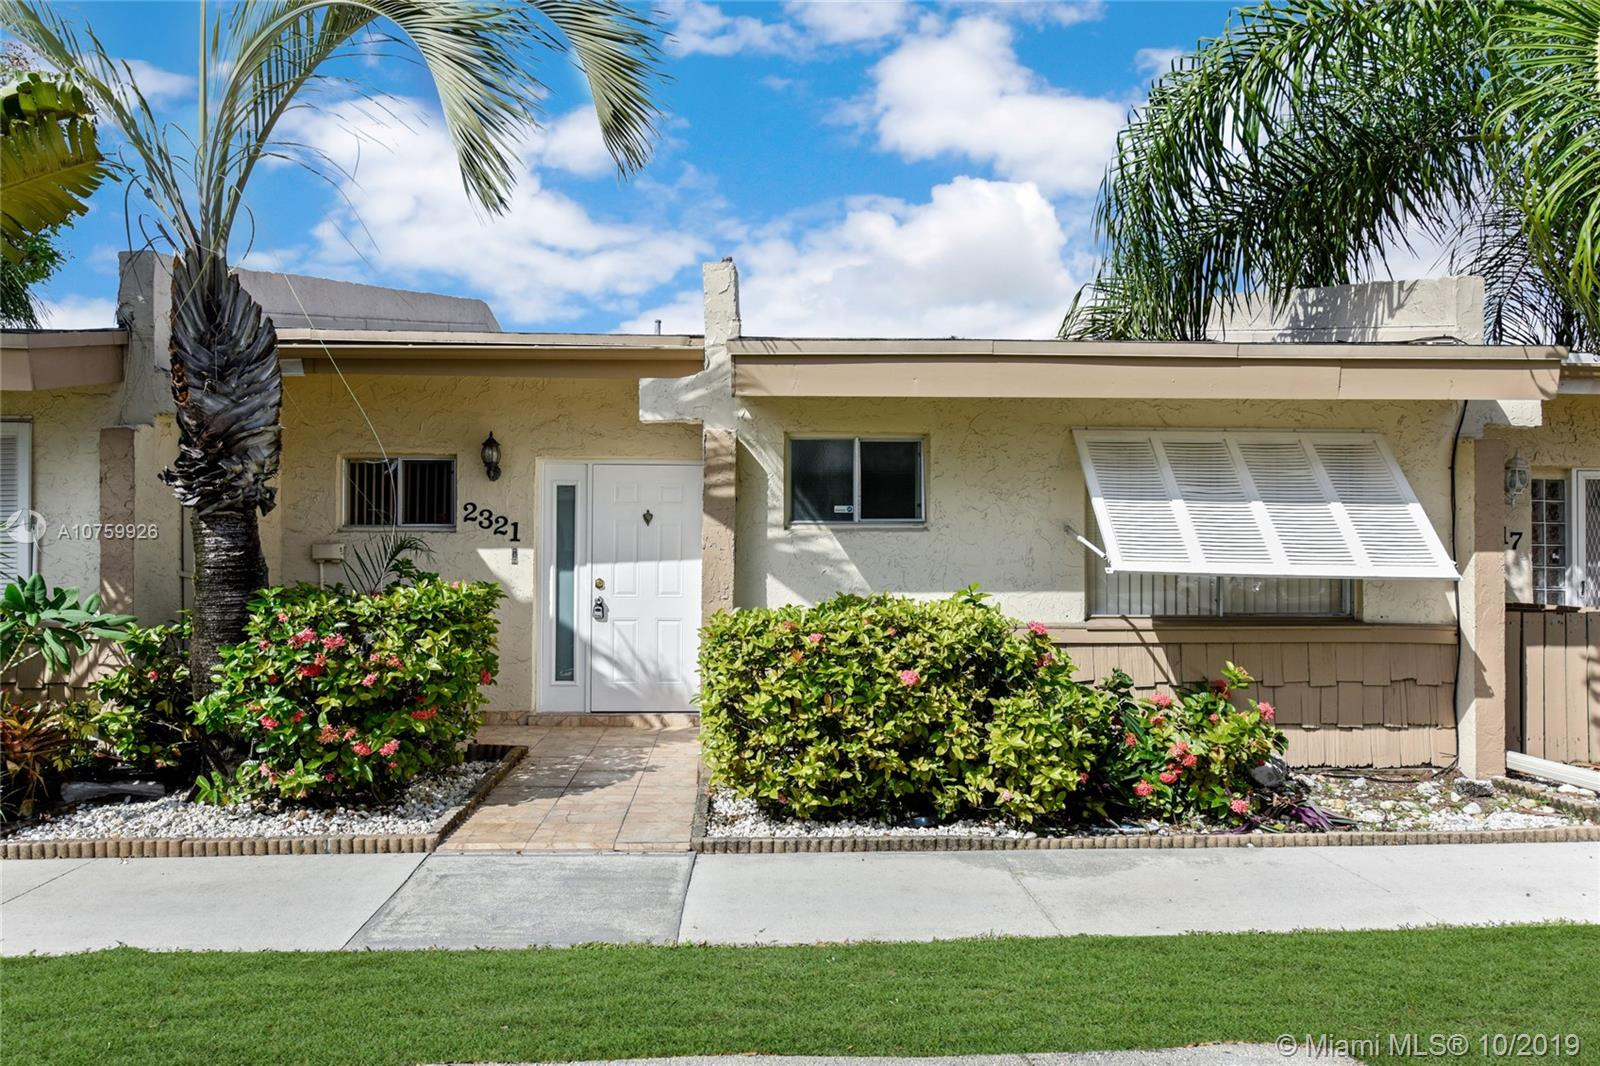 2321 N 37th Ave  For Sale A10759926, FL